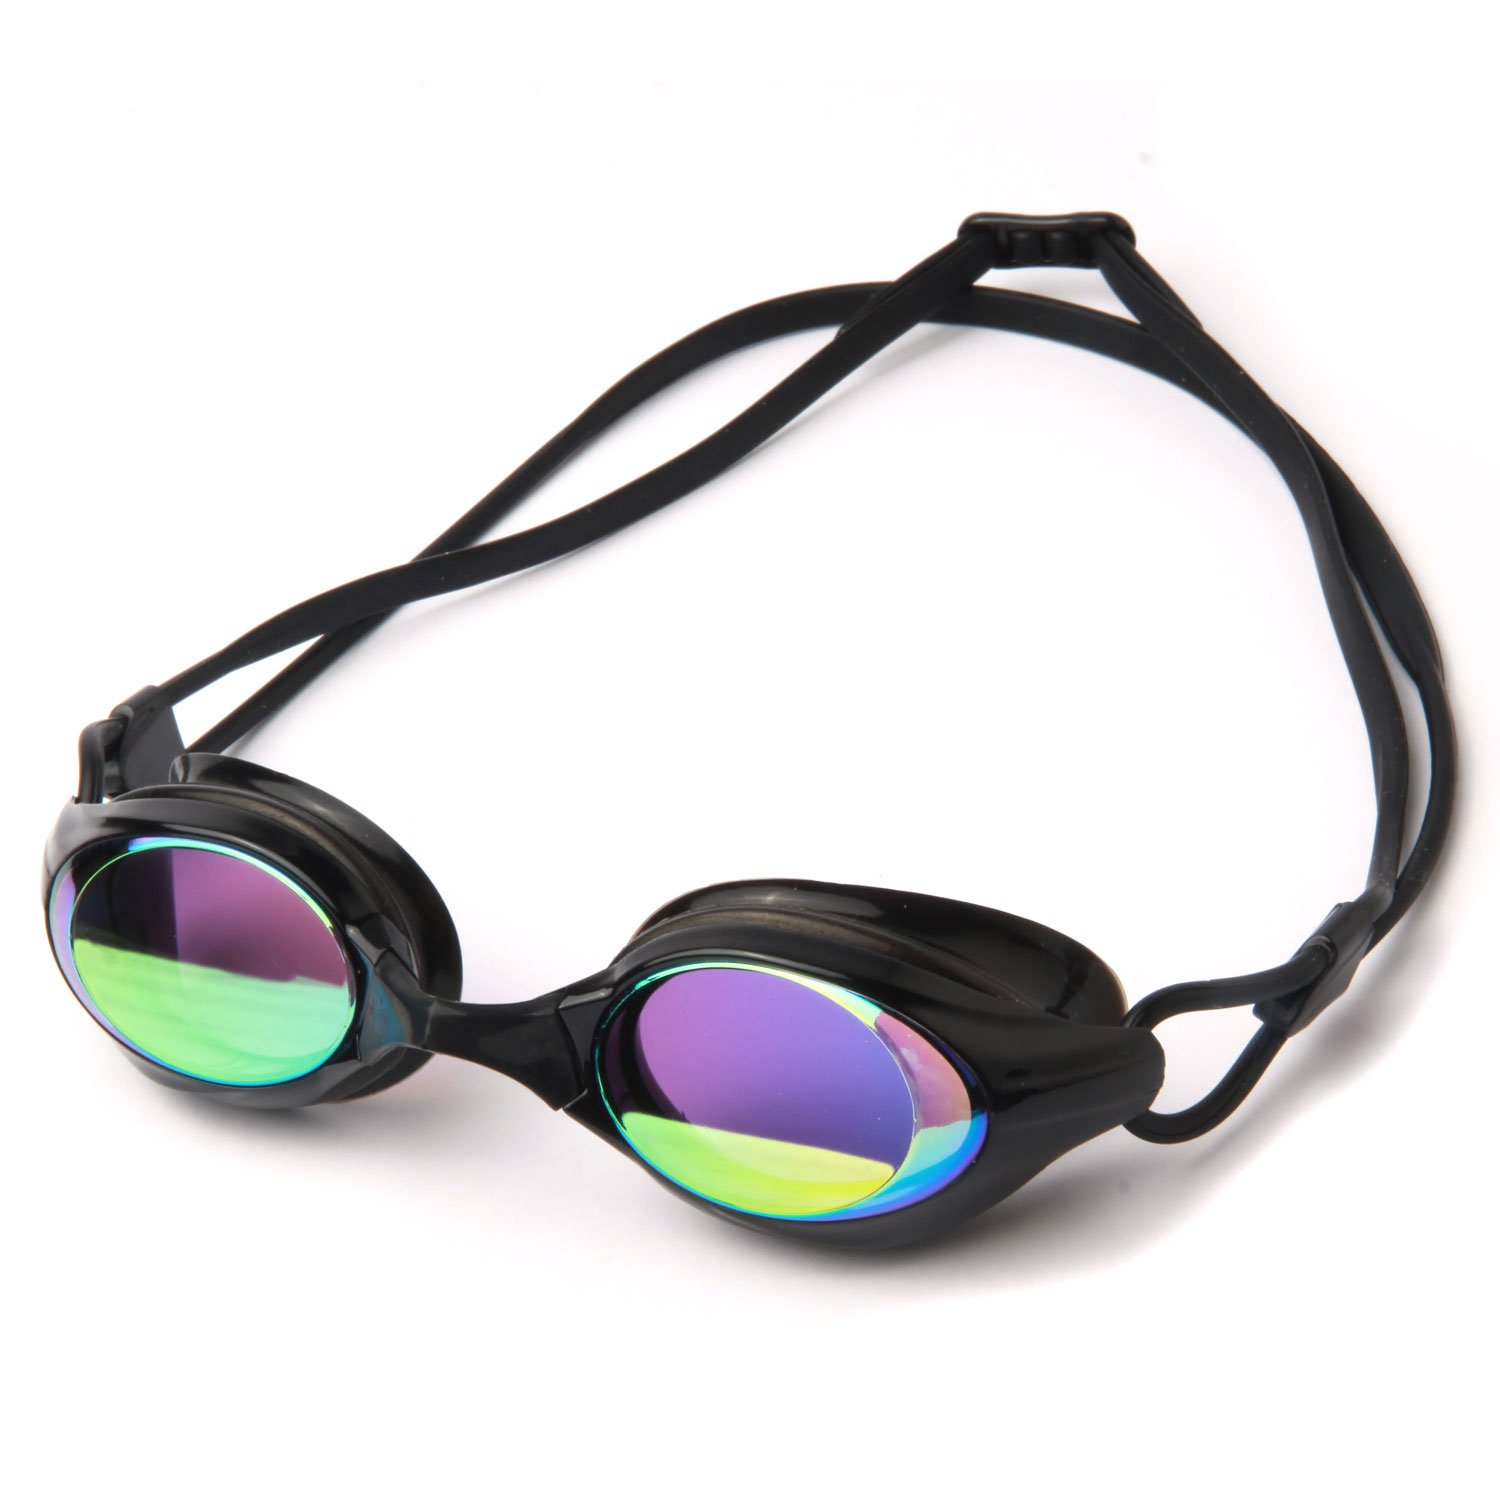 e6fe07e7c31 Poqswim Aqua Mirrored Swim Goggles 8300 Anti-fog Uv Protection